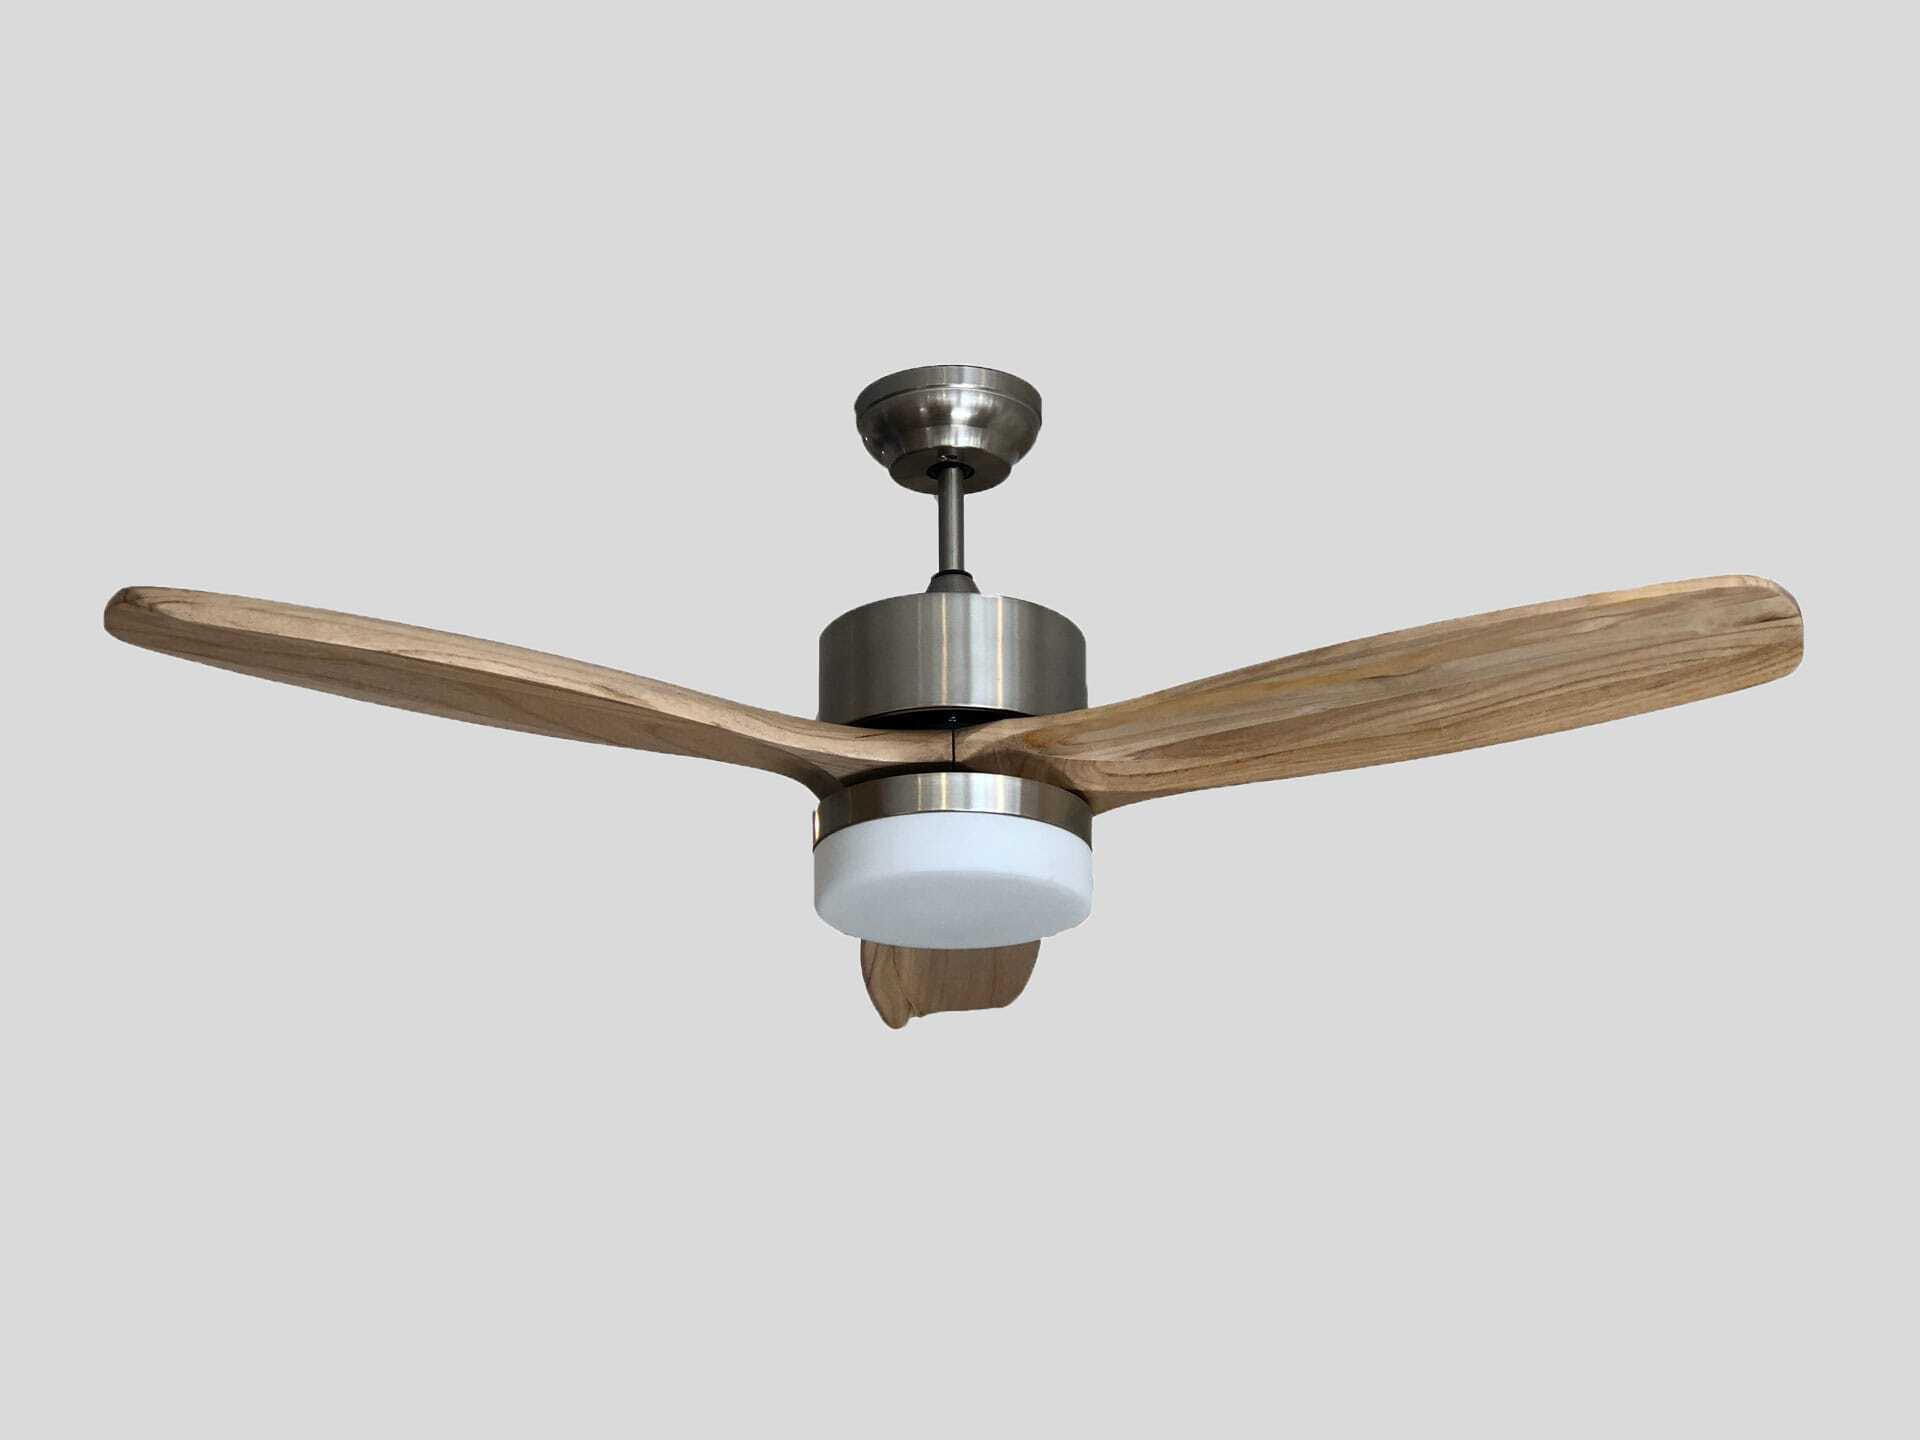 Alsanfan – Profan Modern - Light Brown With Lamp Ceiling Fan